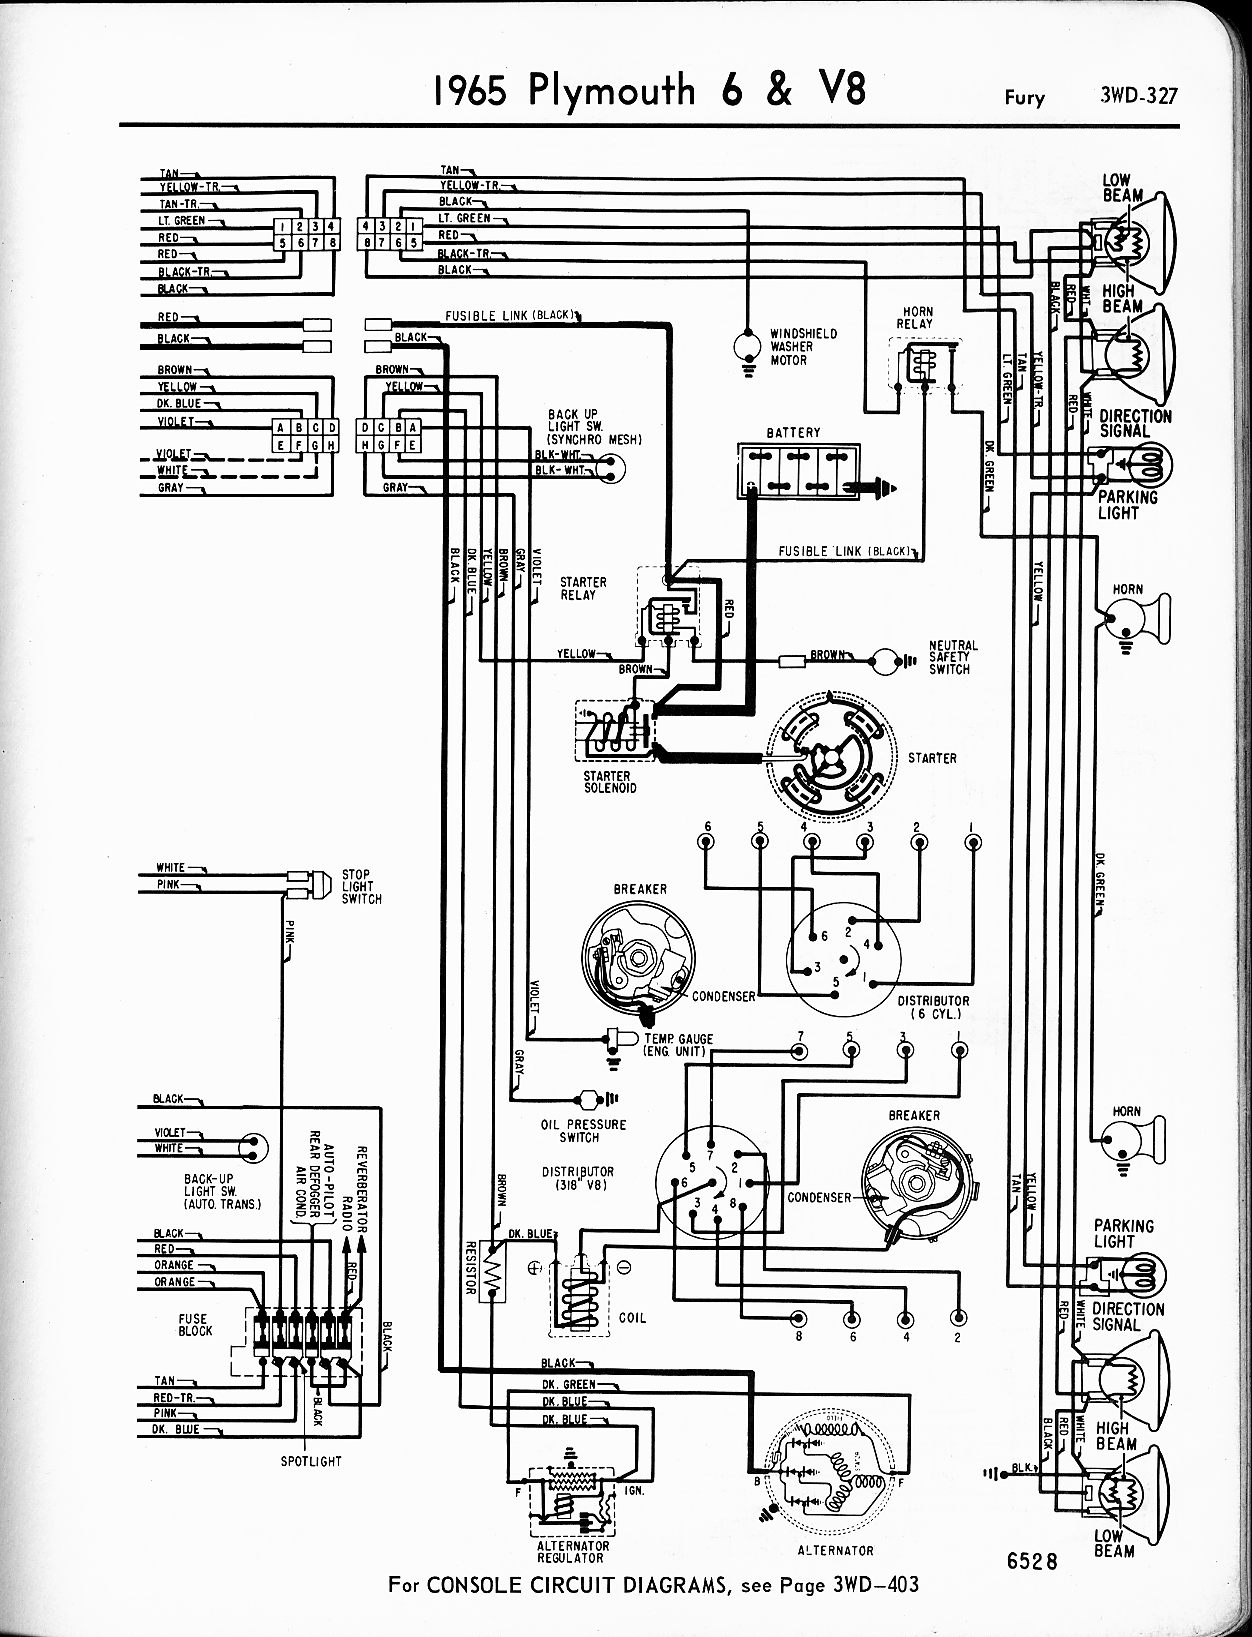 1976 Plymouth Ignition Wiring Diagram Free For You 1956 Chevy Truck 1965 The Old Car Manual Project Rh Oldcarmanualproject Com Basic Switch